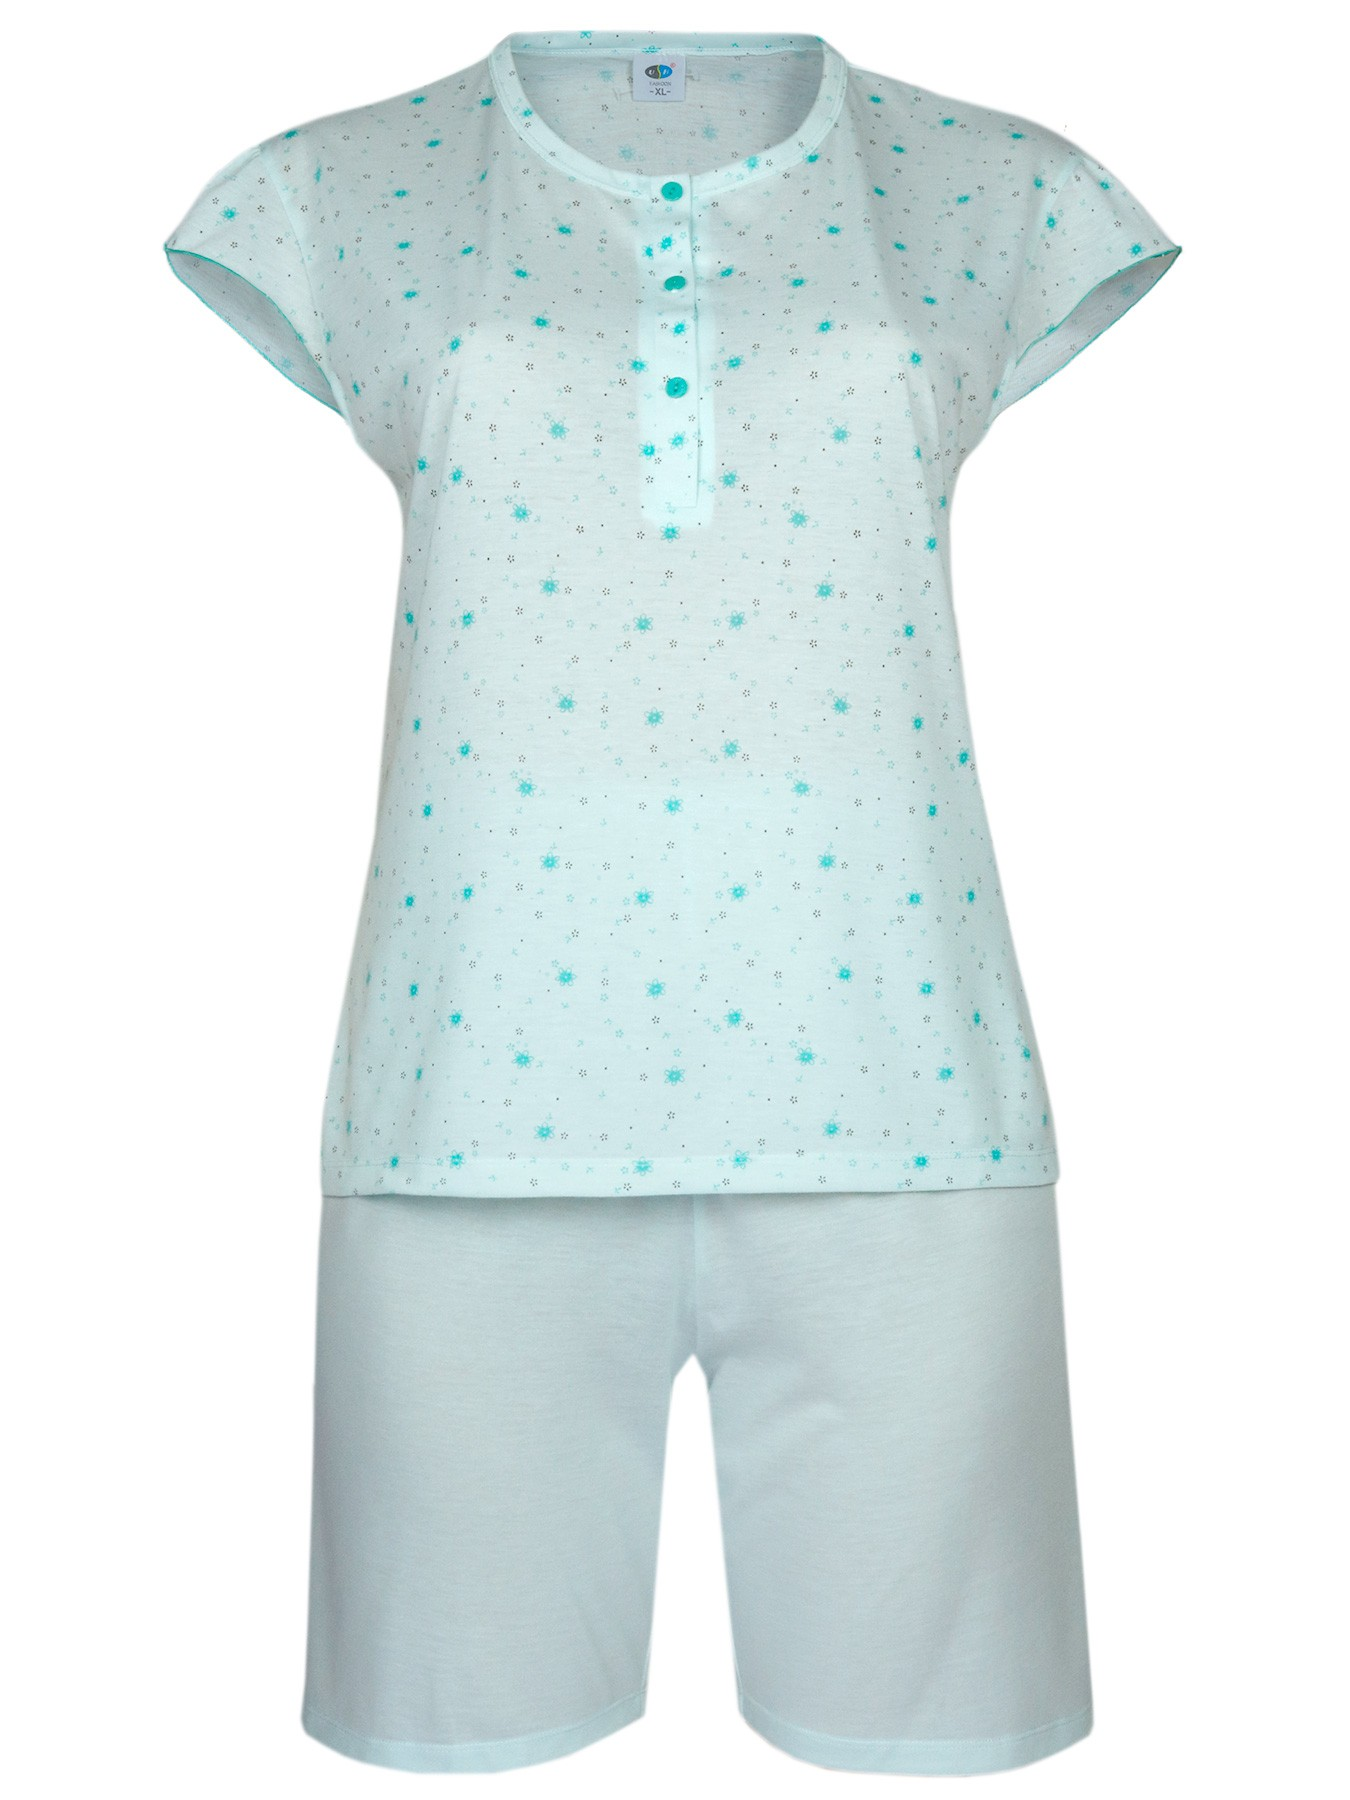 Damen Kurz-Pyjama, Shorty Set 100% Baumwolle - türkis